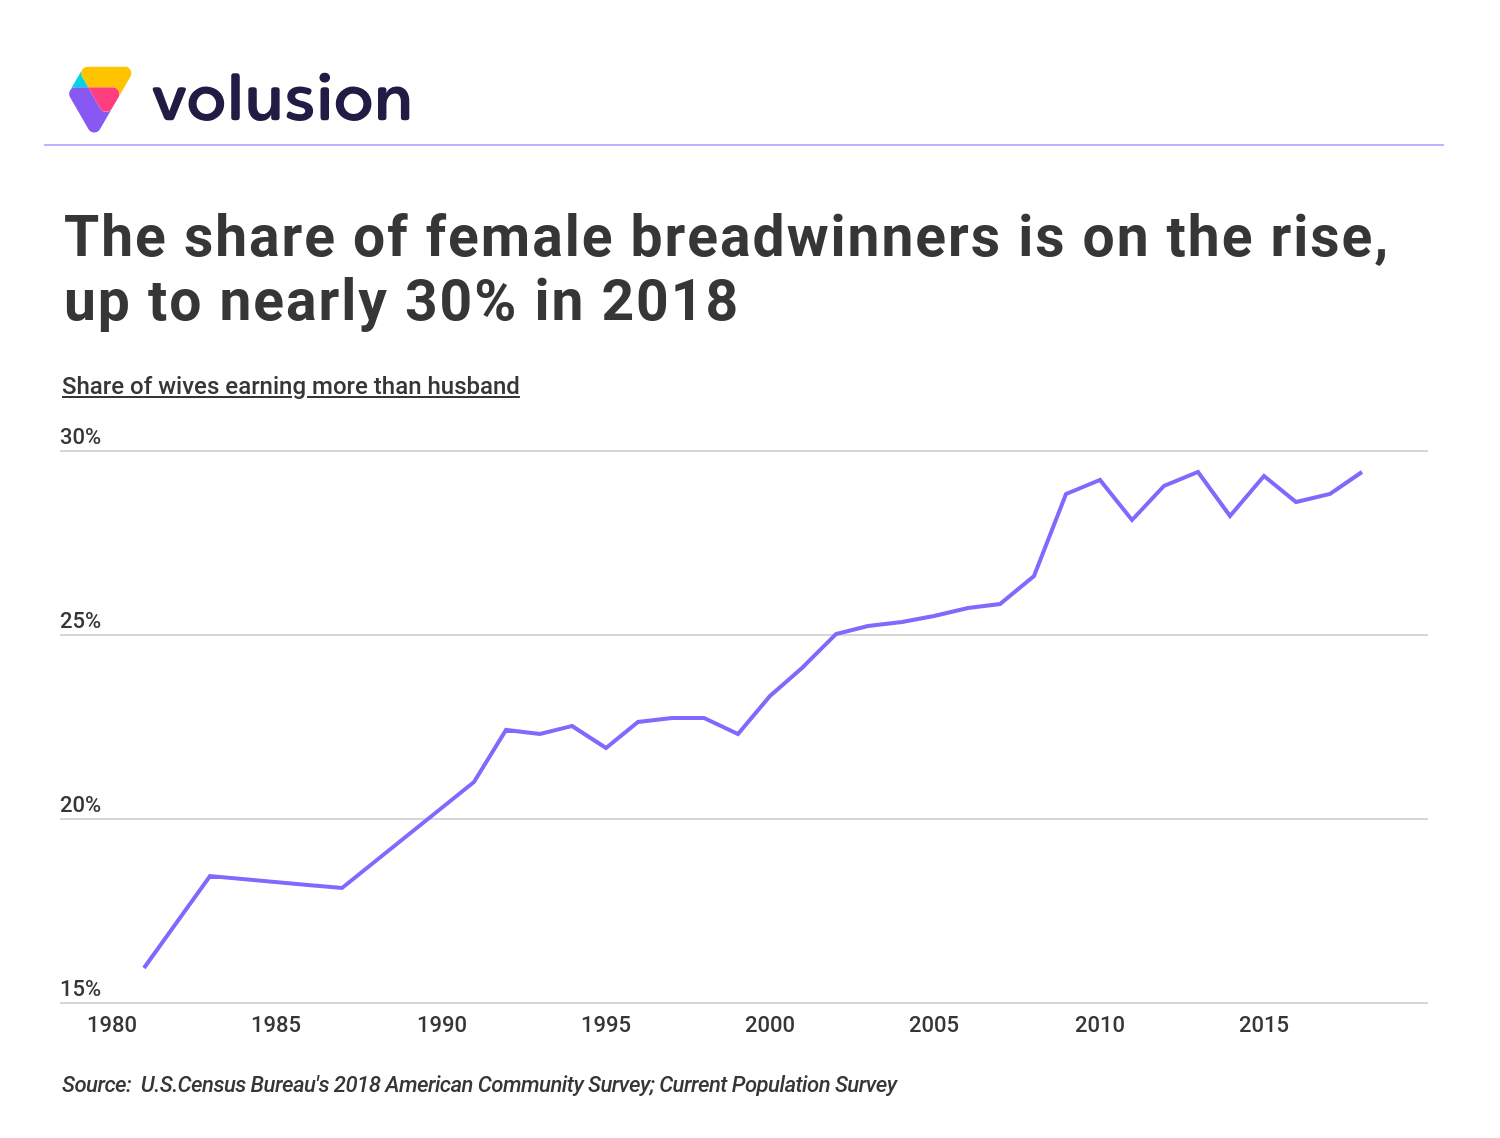 Line graph showing the increase of female breadwinners in the US rising from 15% in 1980 to 30% in 2018